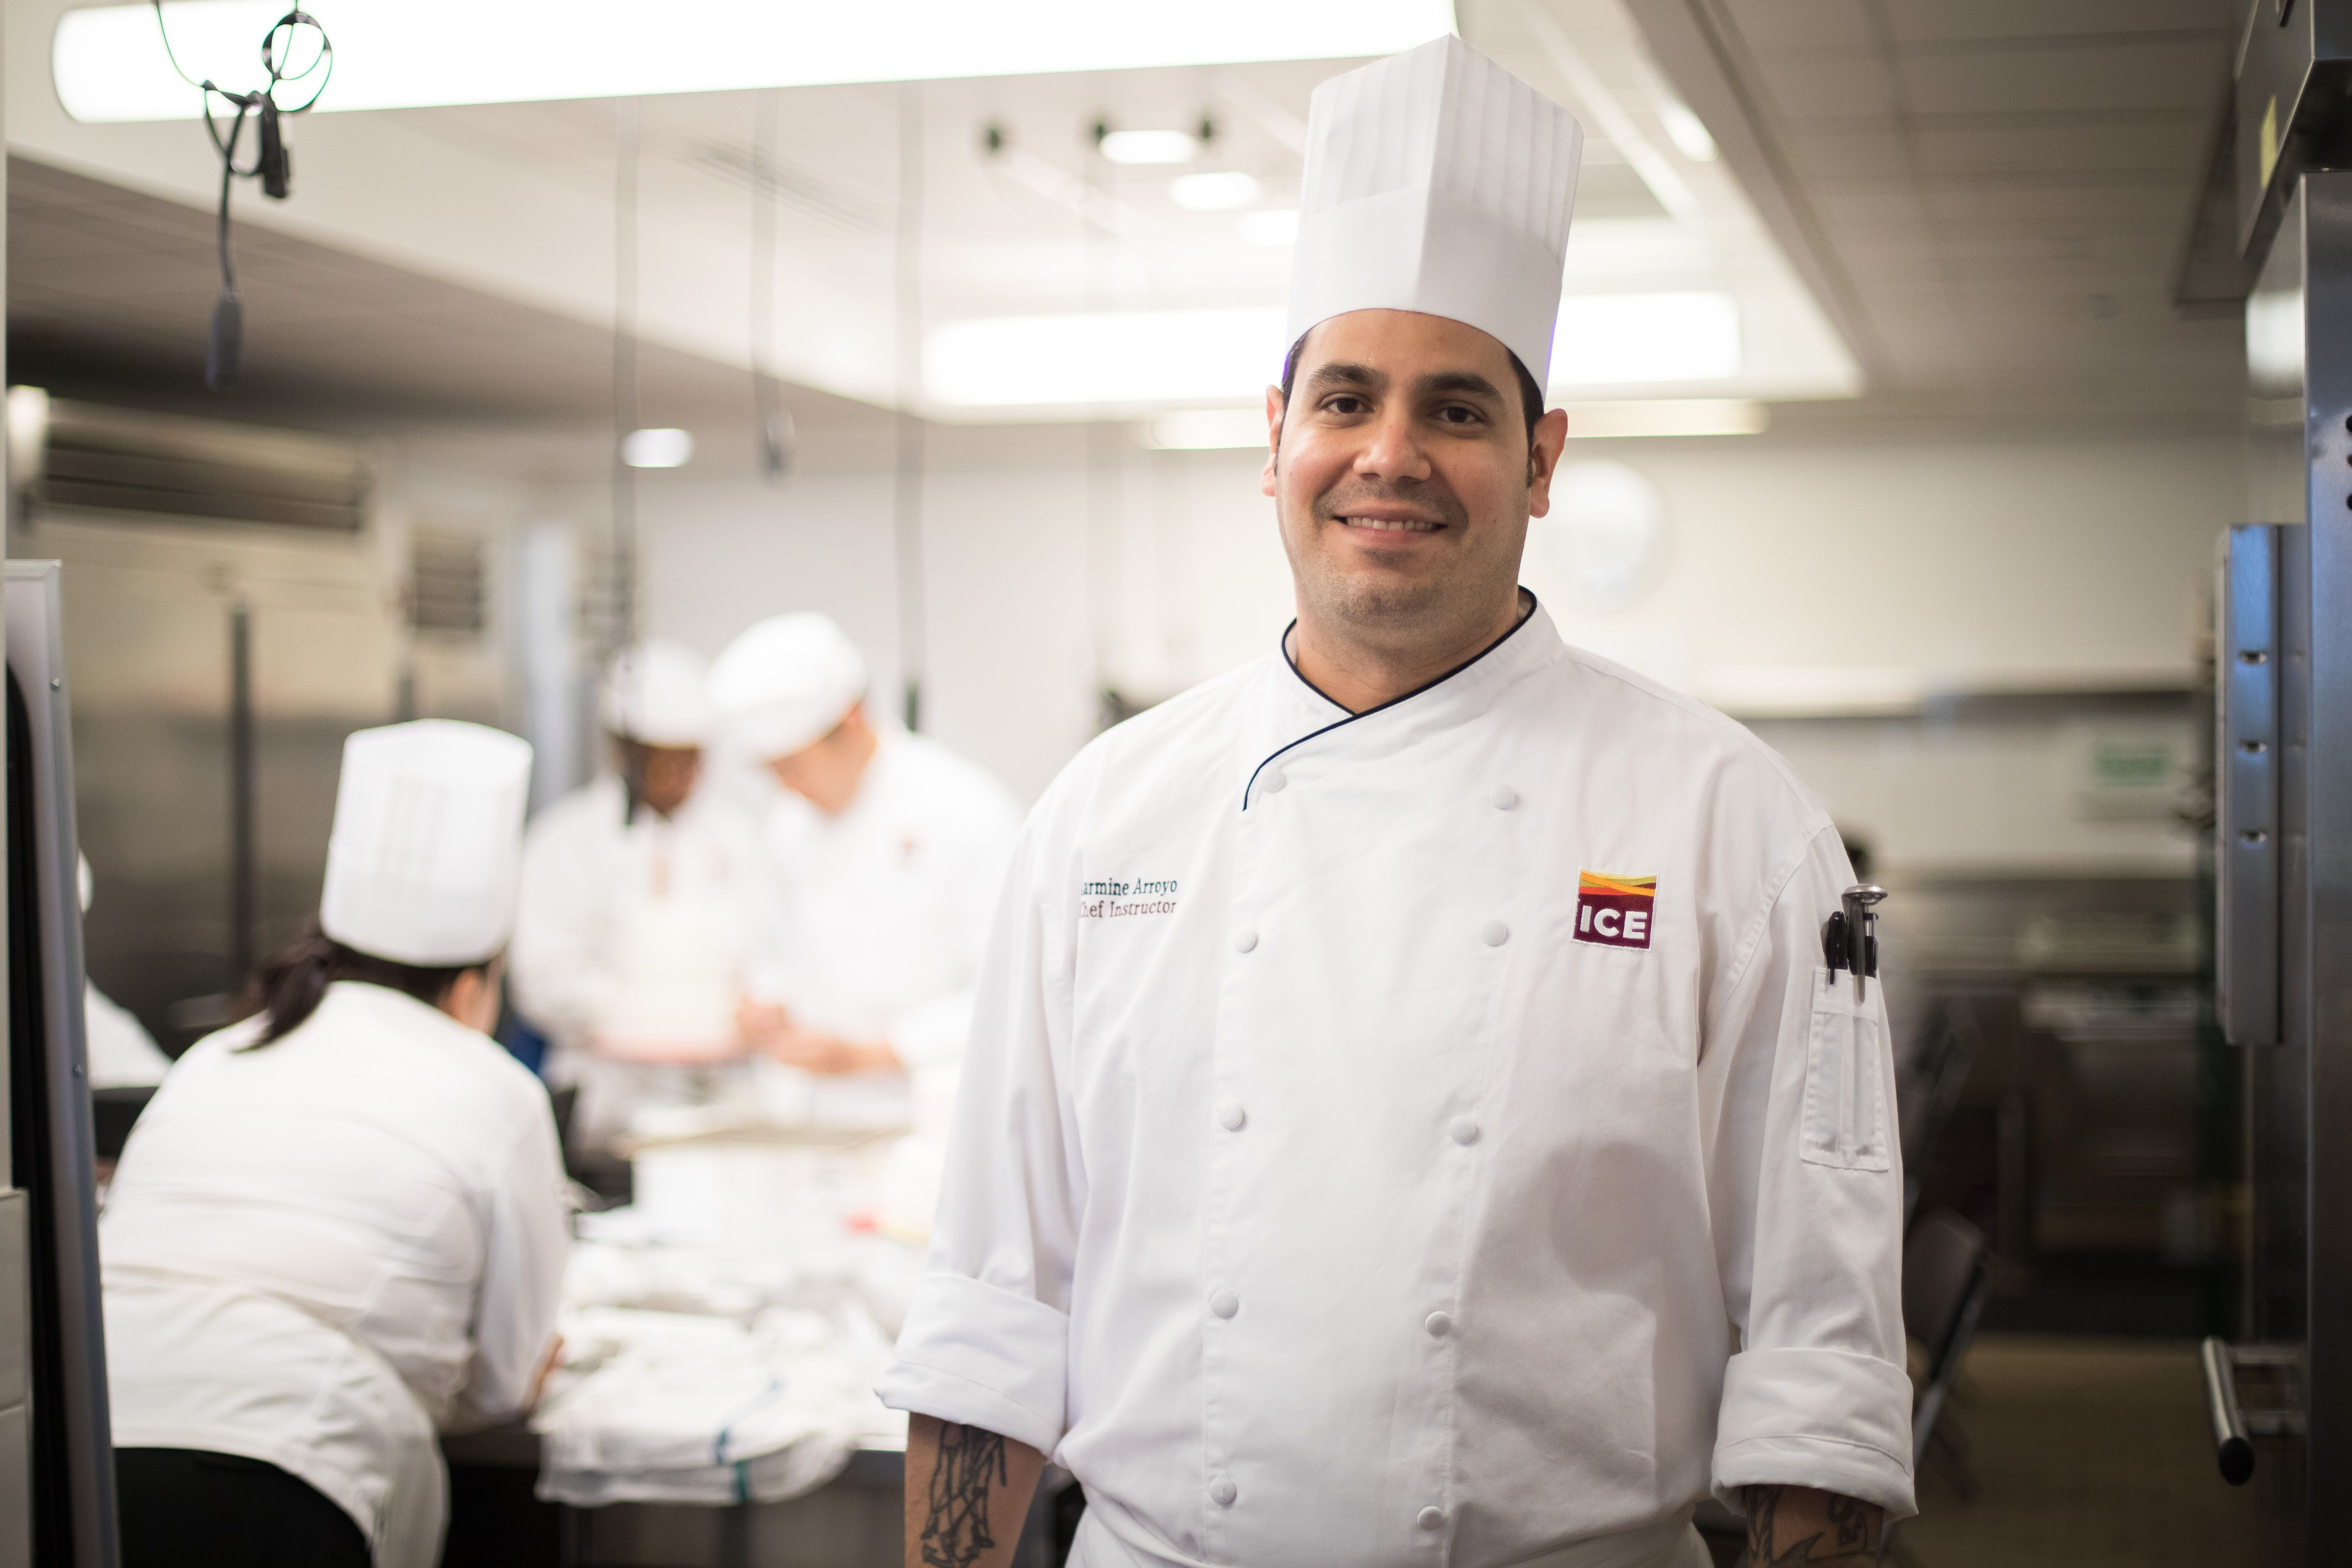 Chef Carmine One Of ICEs Newest Instructors Shared His Path From The Military To Acclaimed NYC Pastry Kitchens ICE Plus What He Thinks Is